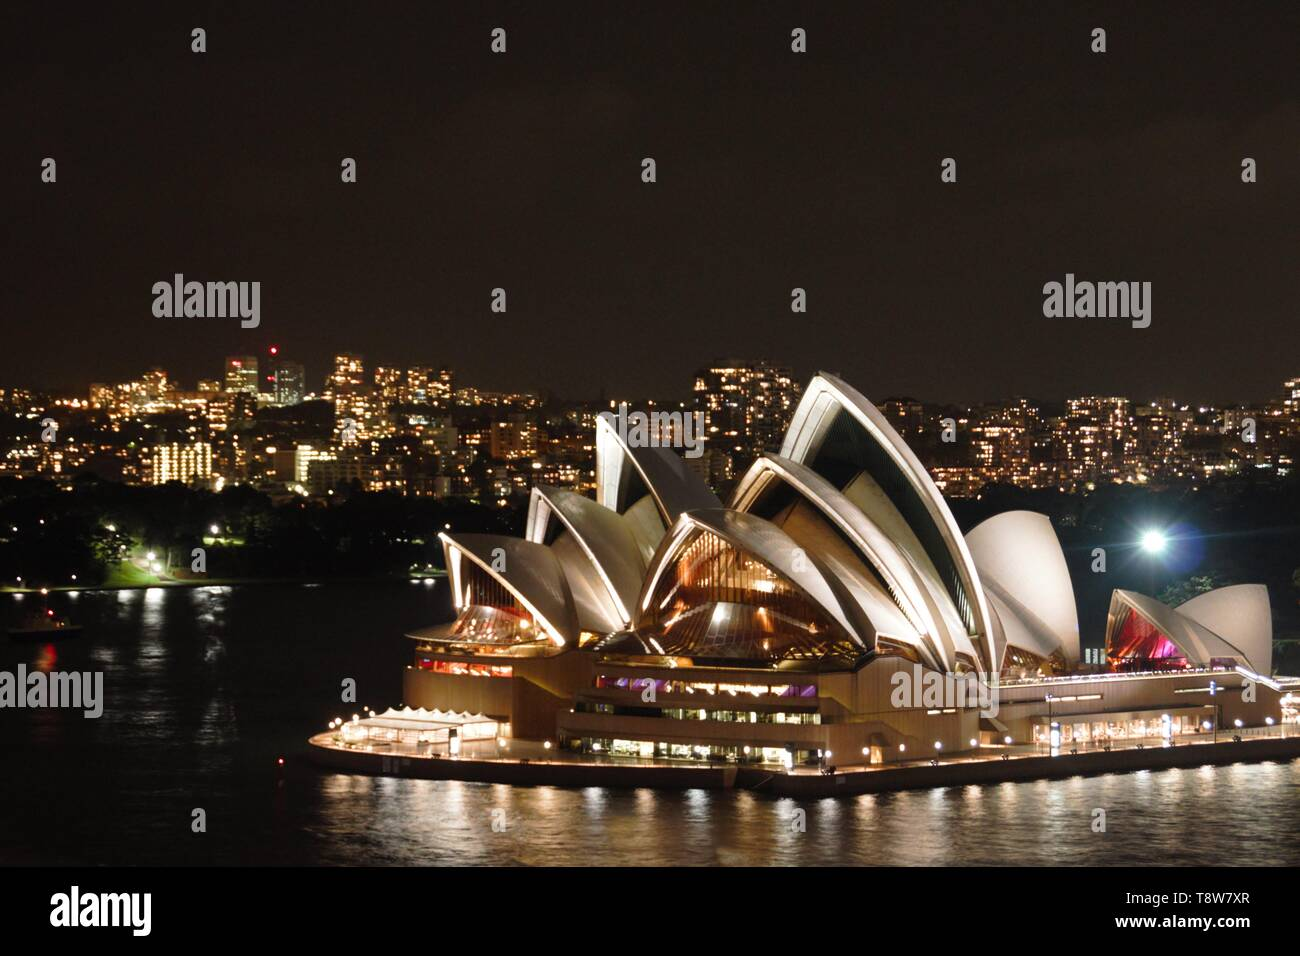 Sydney opera house by night from the harbour bridge - Stock Image